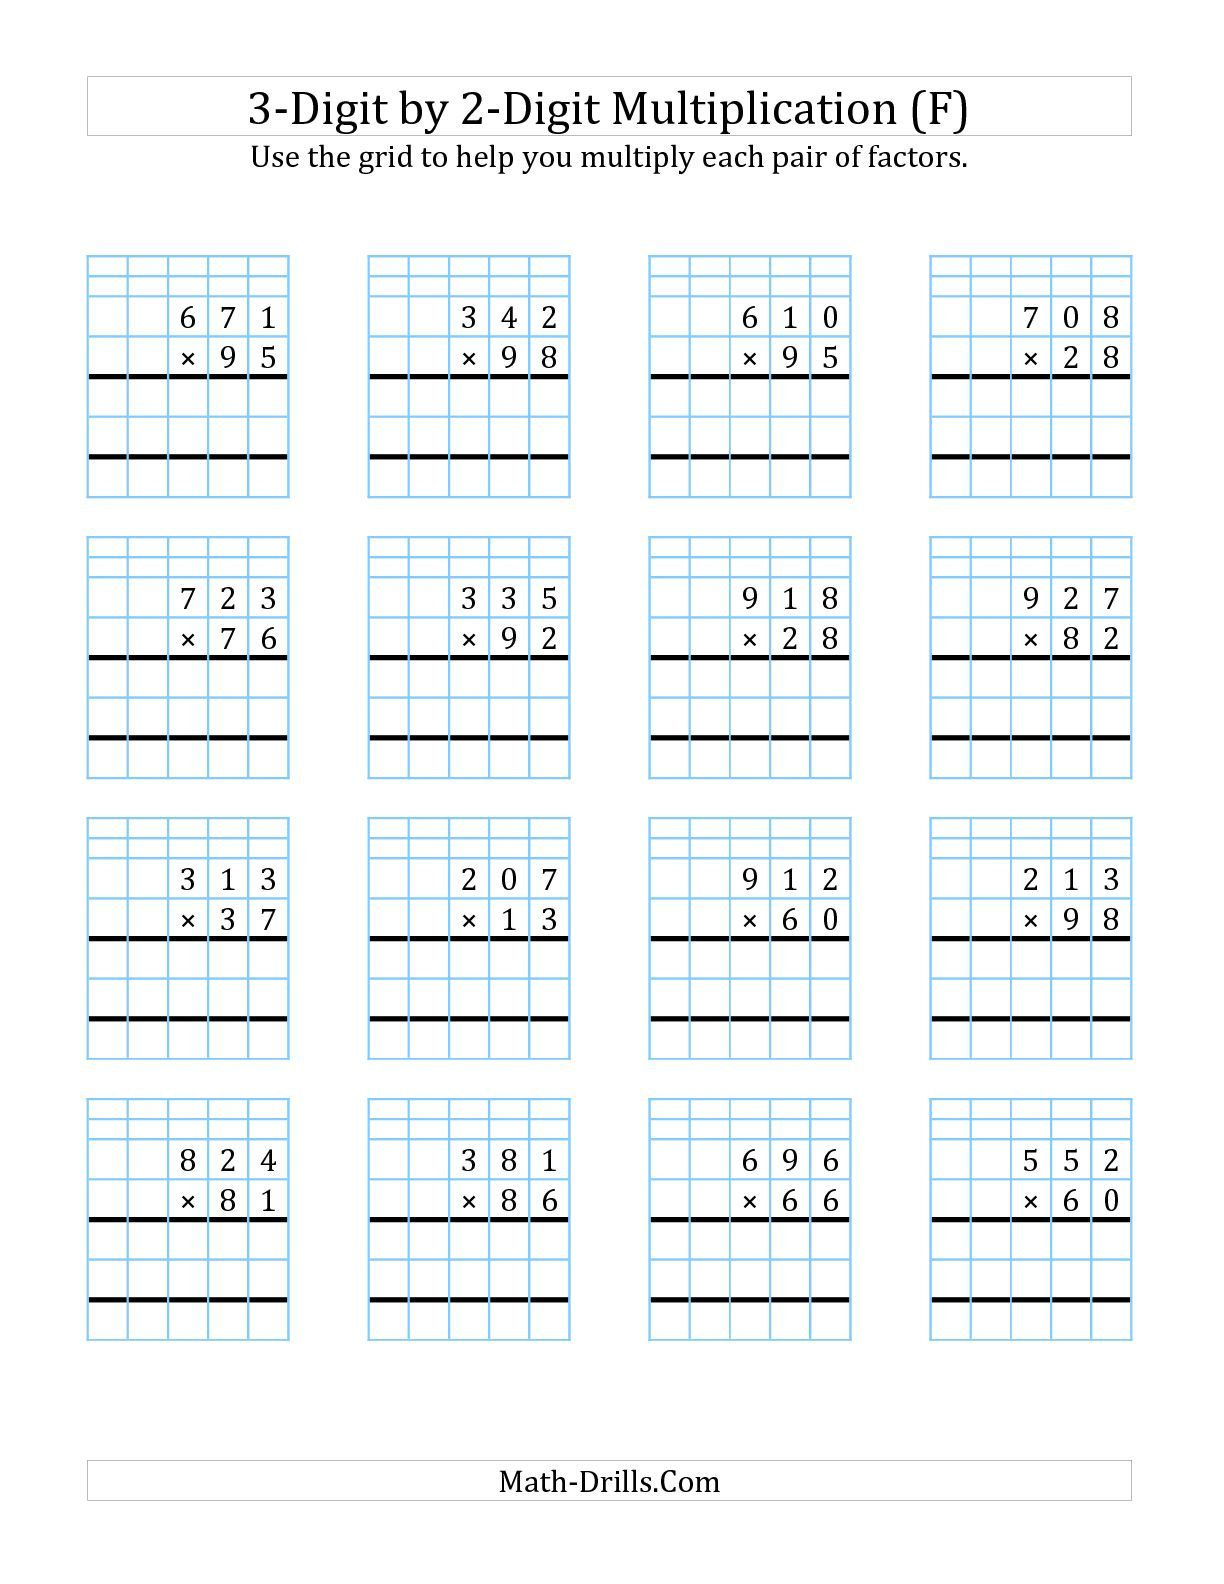 3 Digit By 2 Digit Multiplic Ti With Grid Supp T F M Th